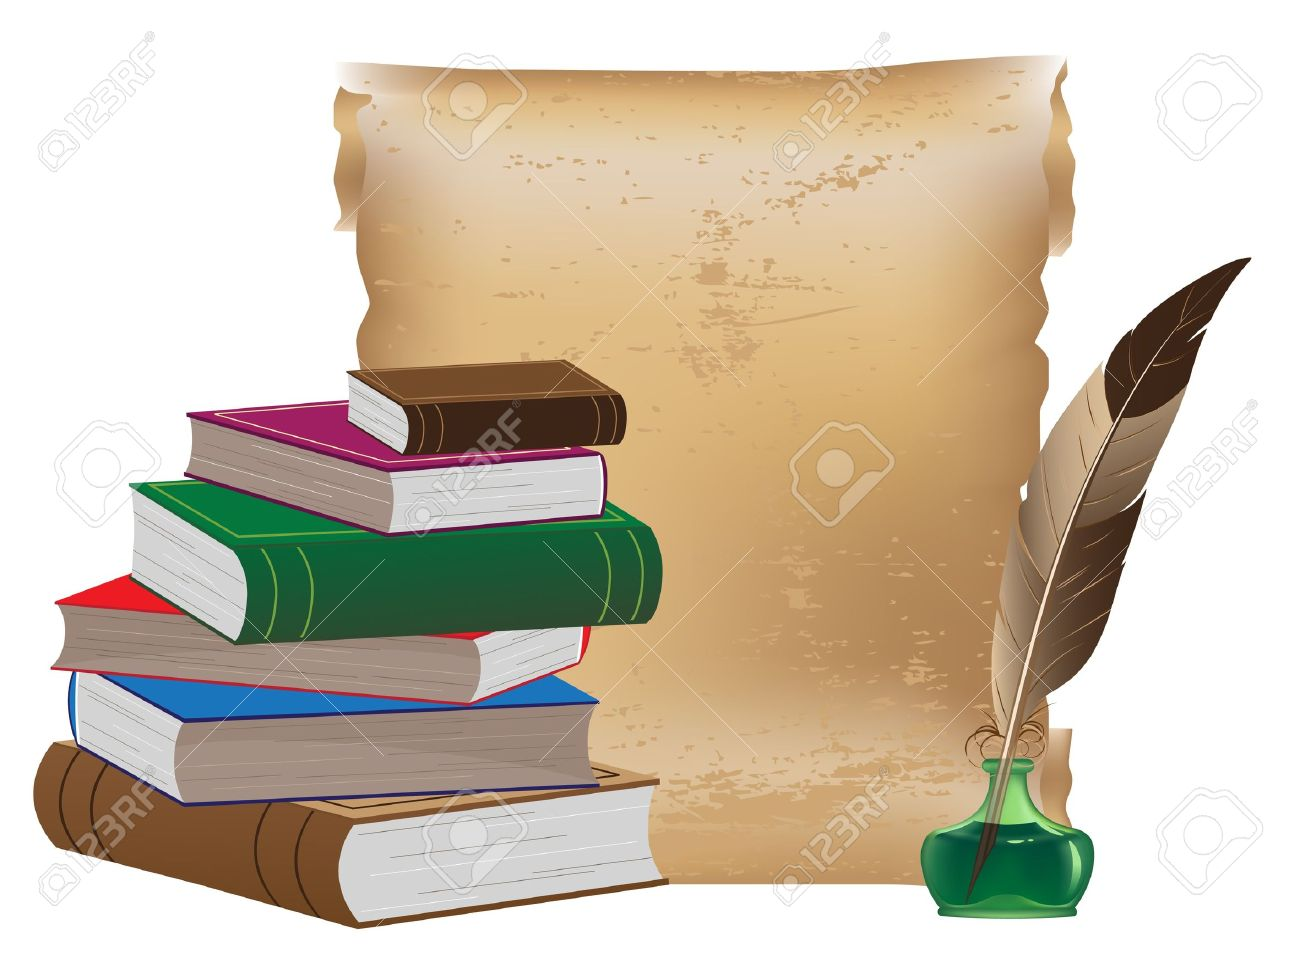 Pile of old books, ancient manuscript, inkwell and feather - 13187812